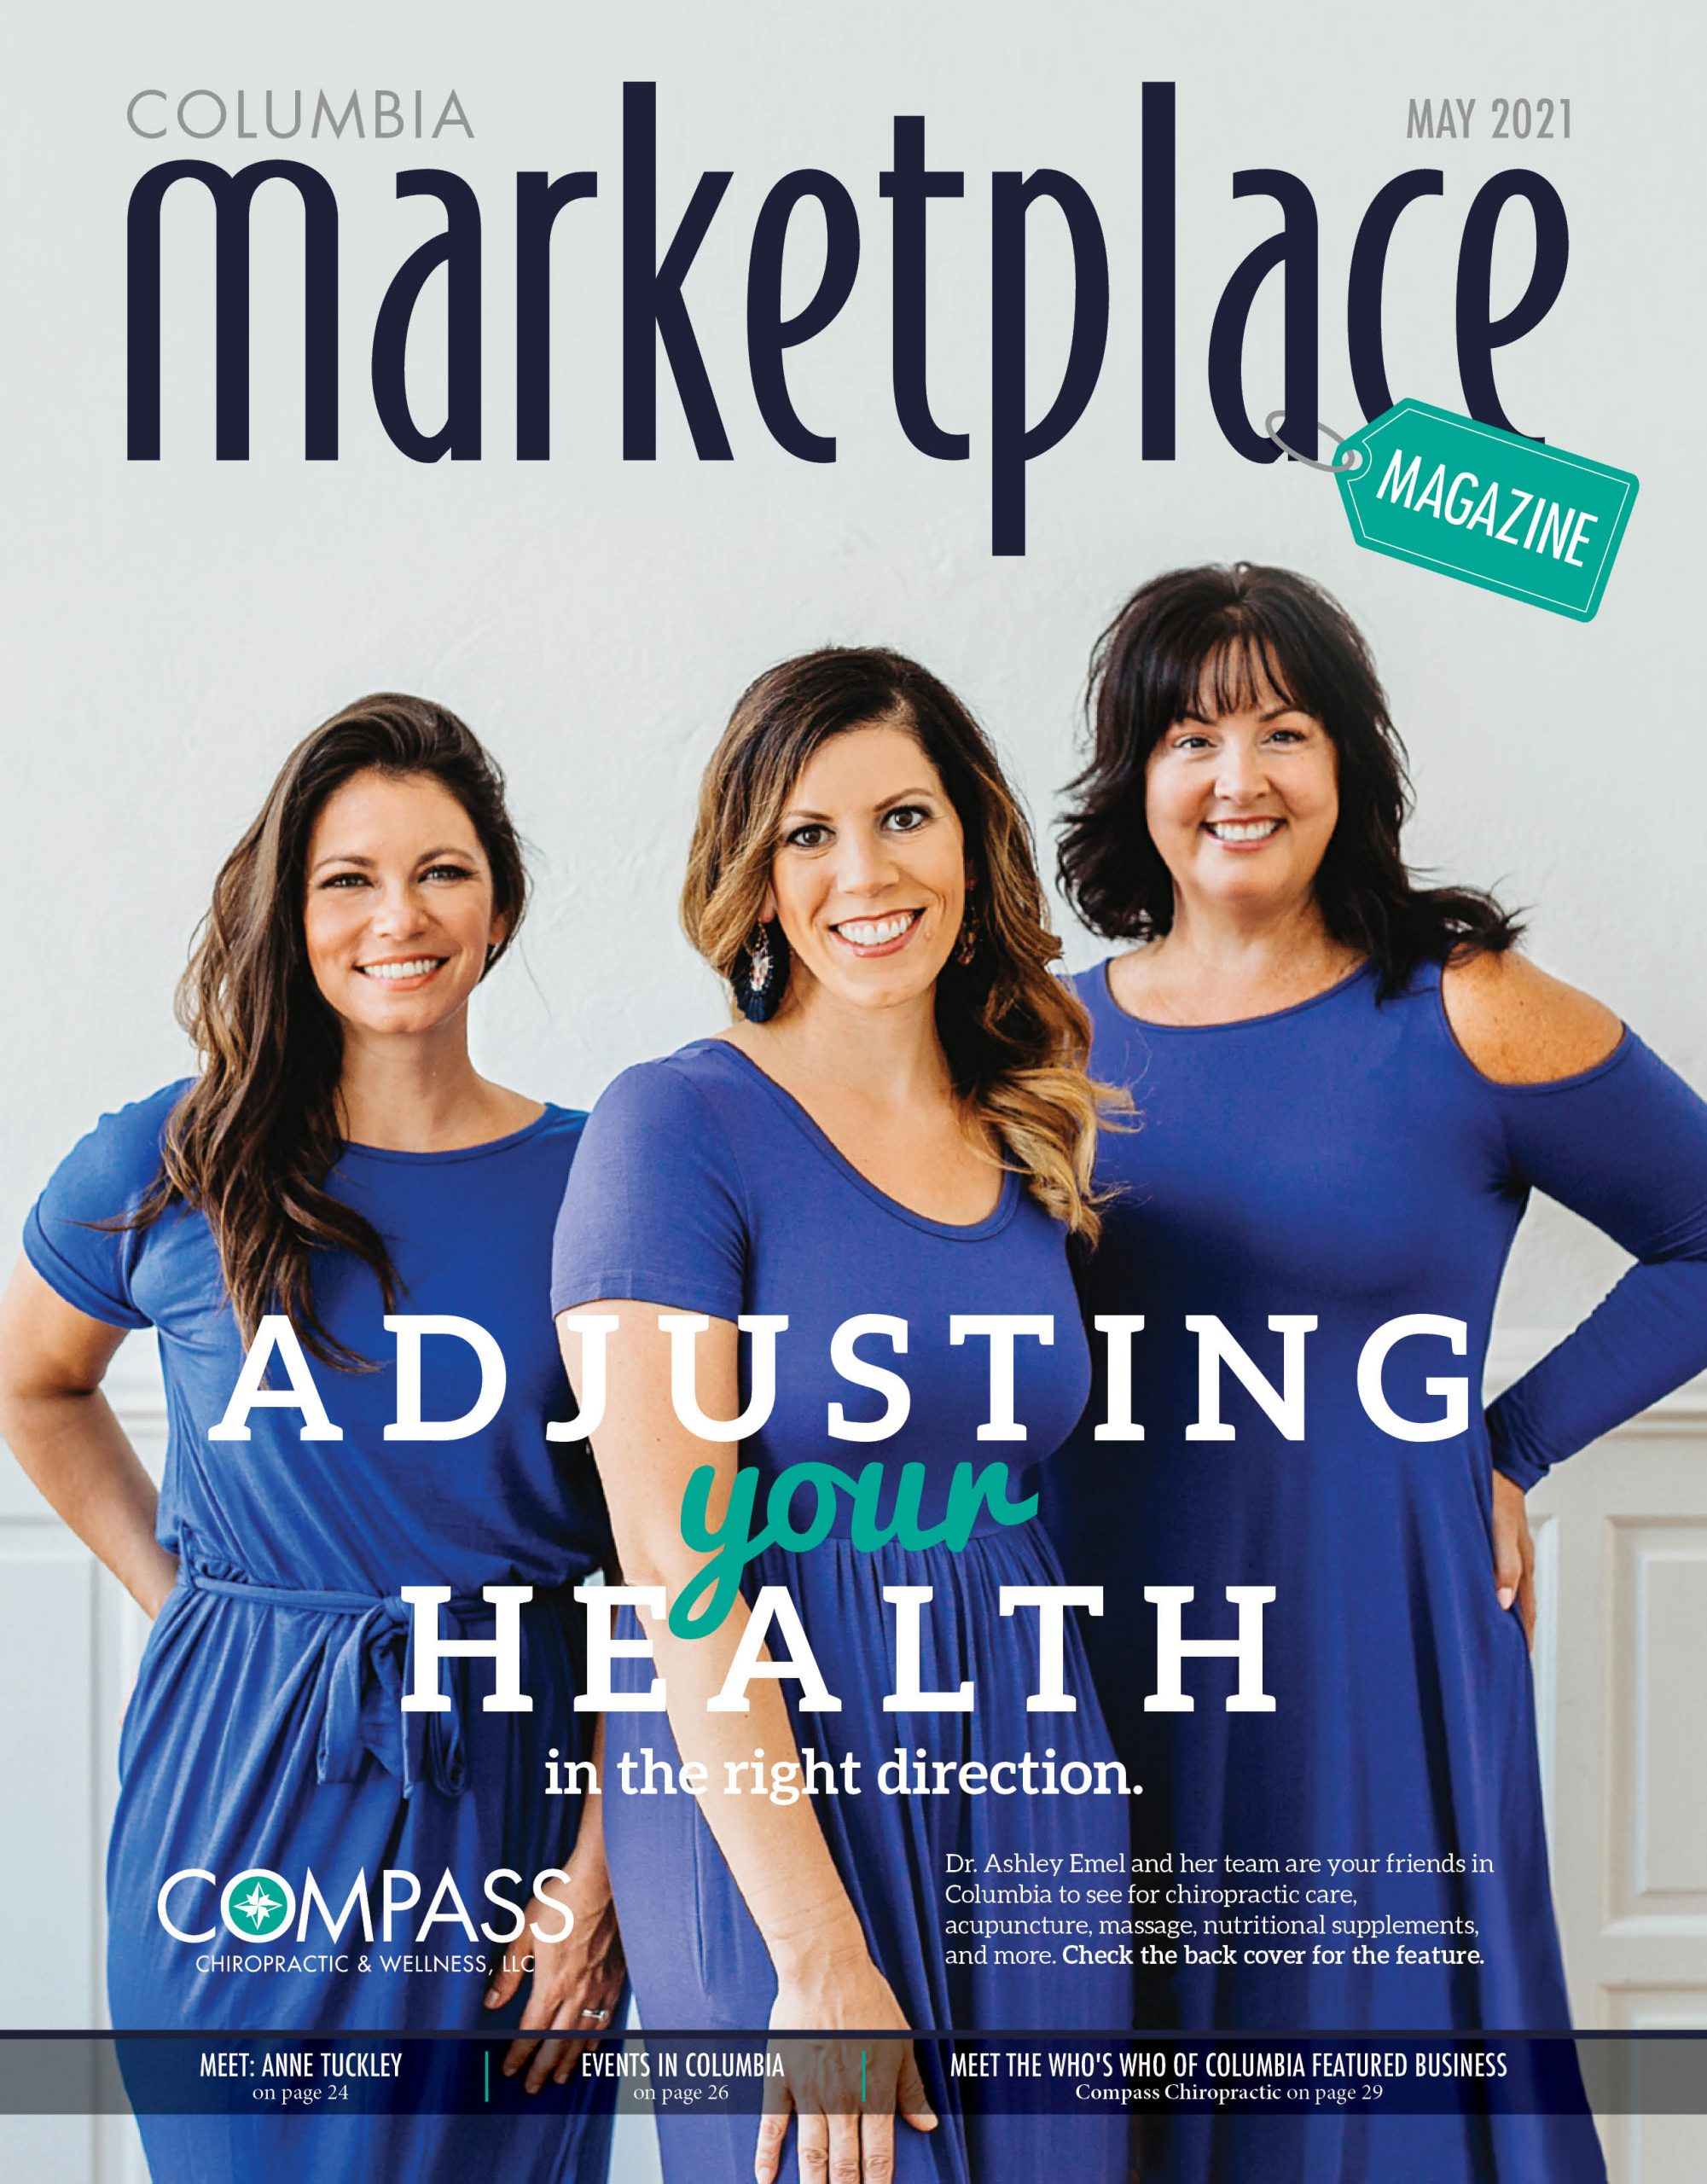 Marketplace Magazine By Modern Media Concepts Compass Chiropractic May 2021 1